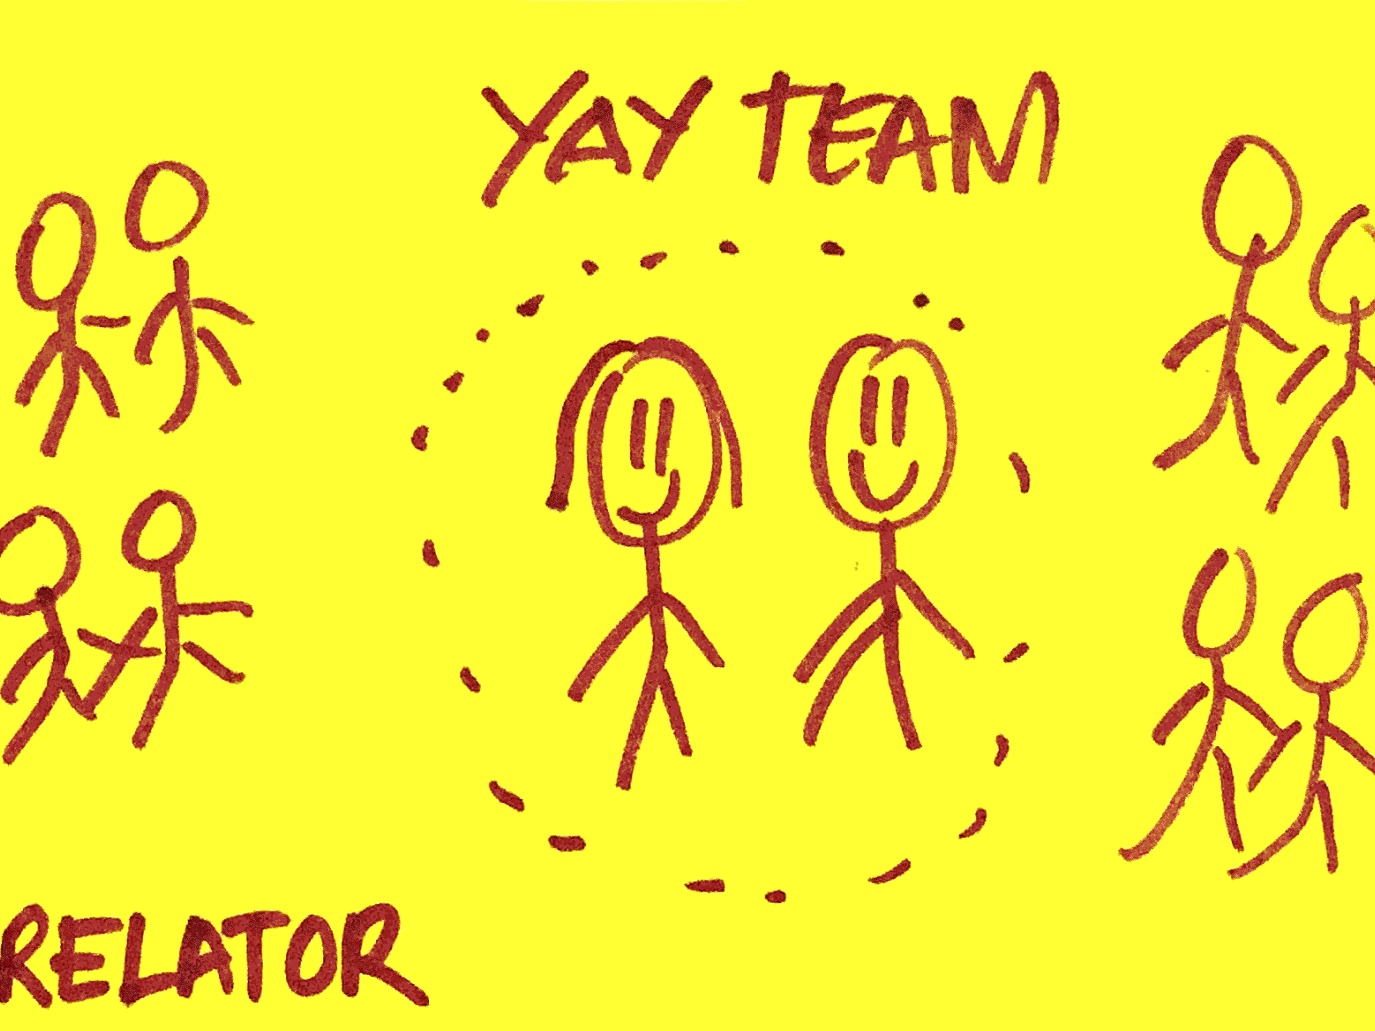 Relator Strengthsfinder Yay Team